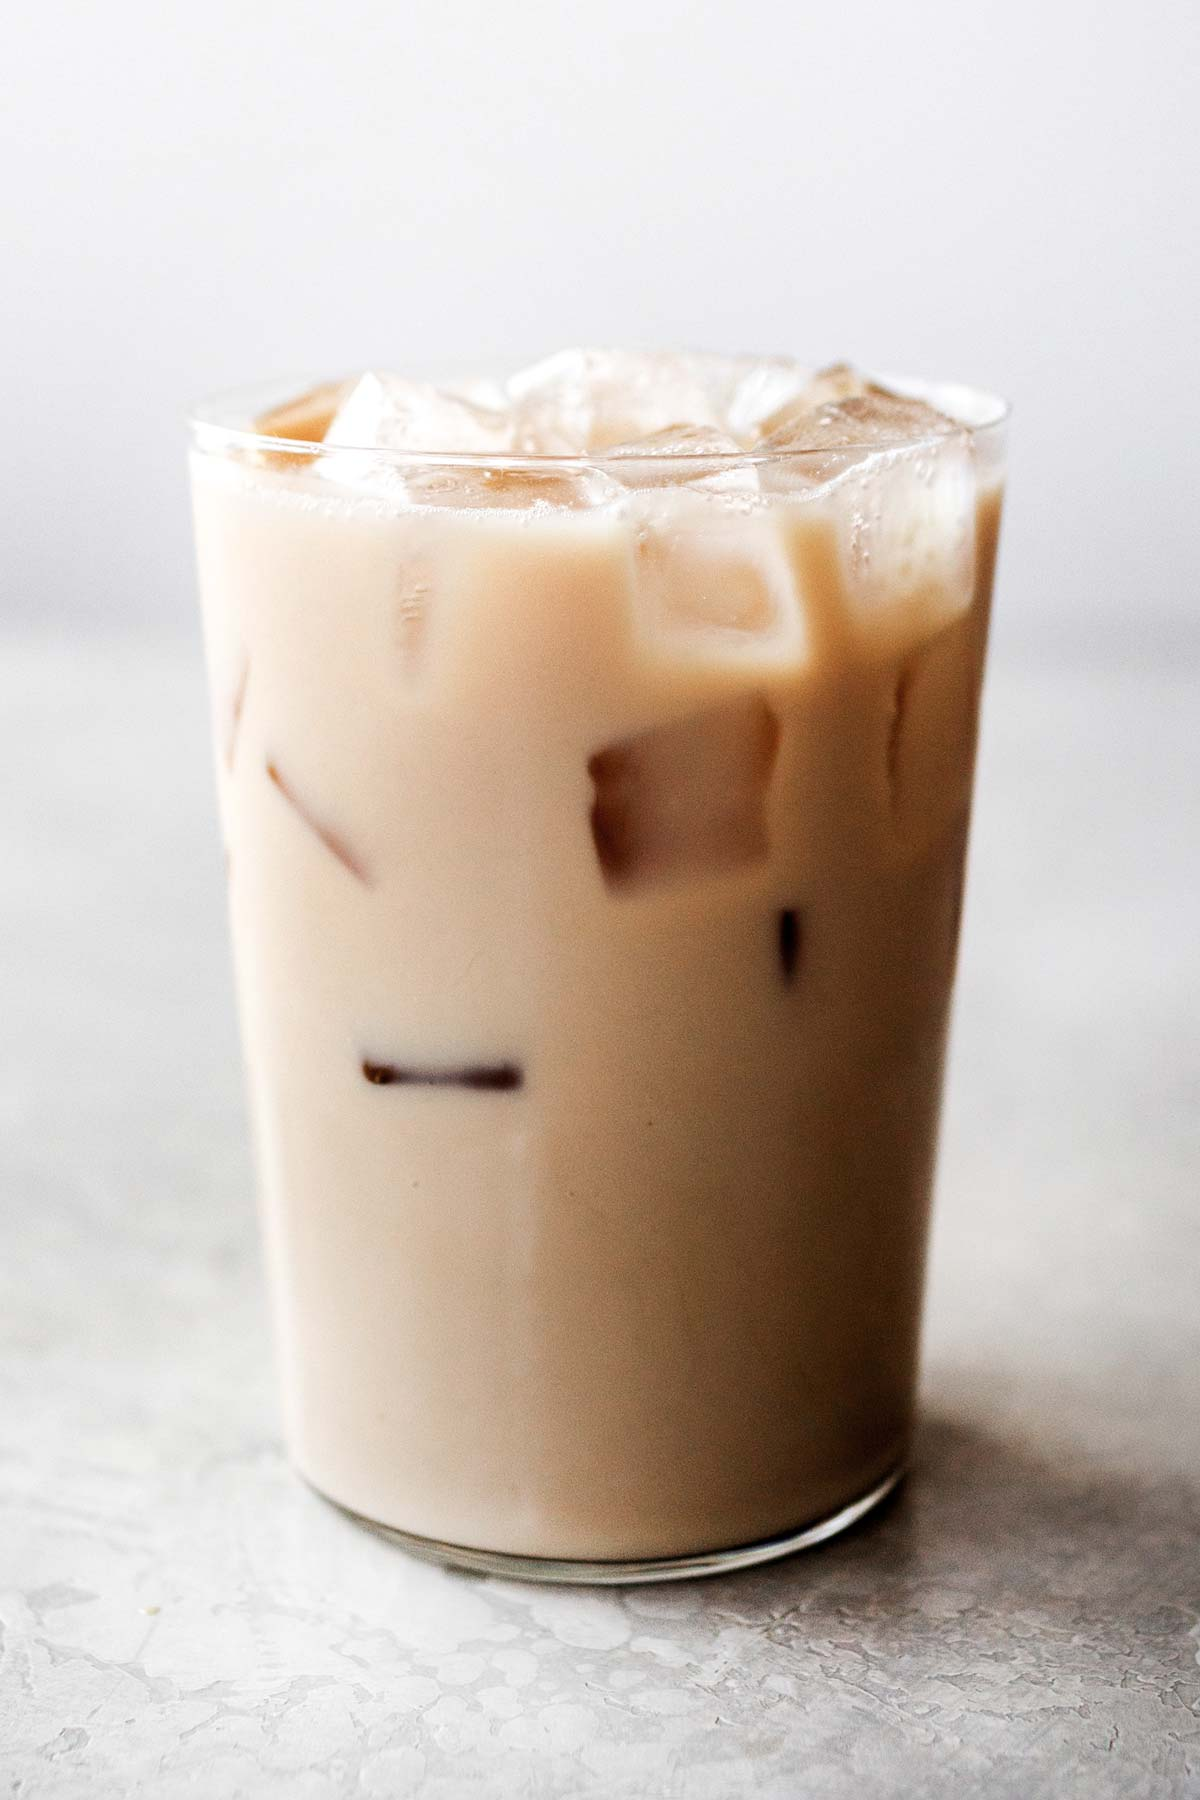 Starbucks Iced Chai Tea Latte dopycat drink in a glass cup.